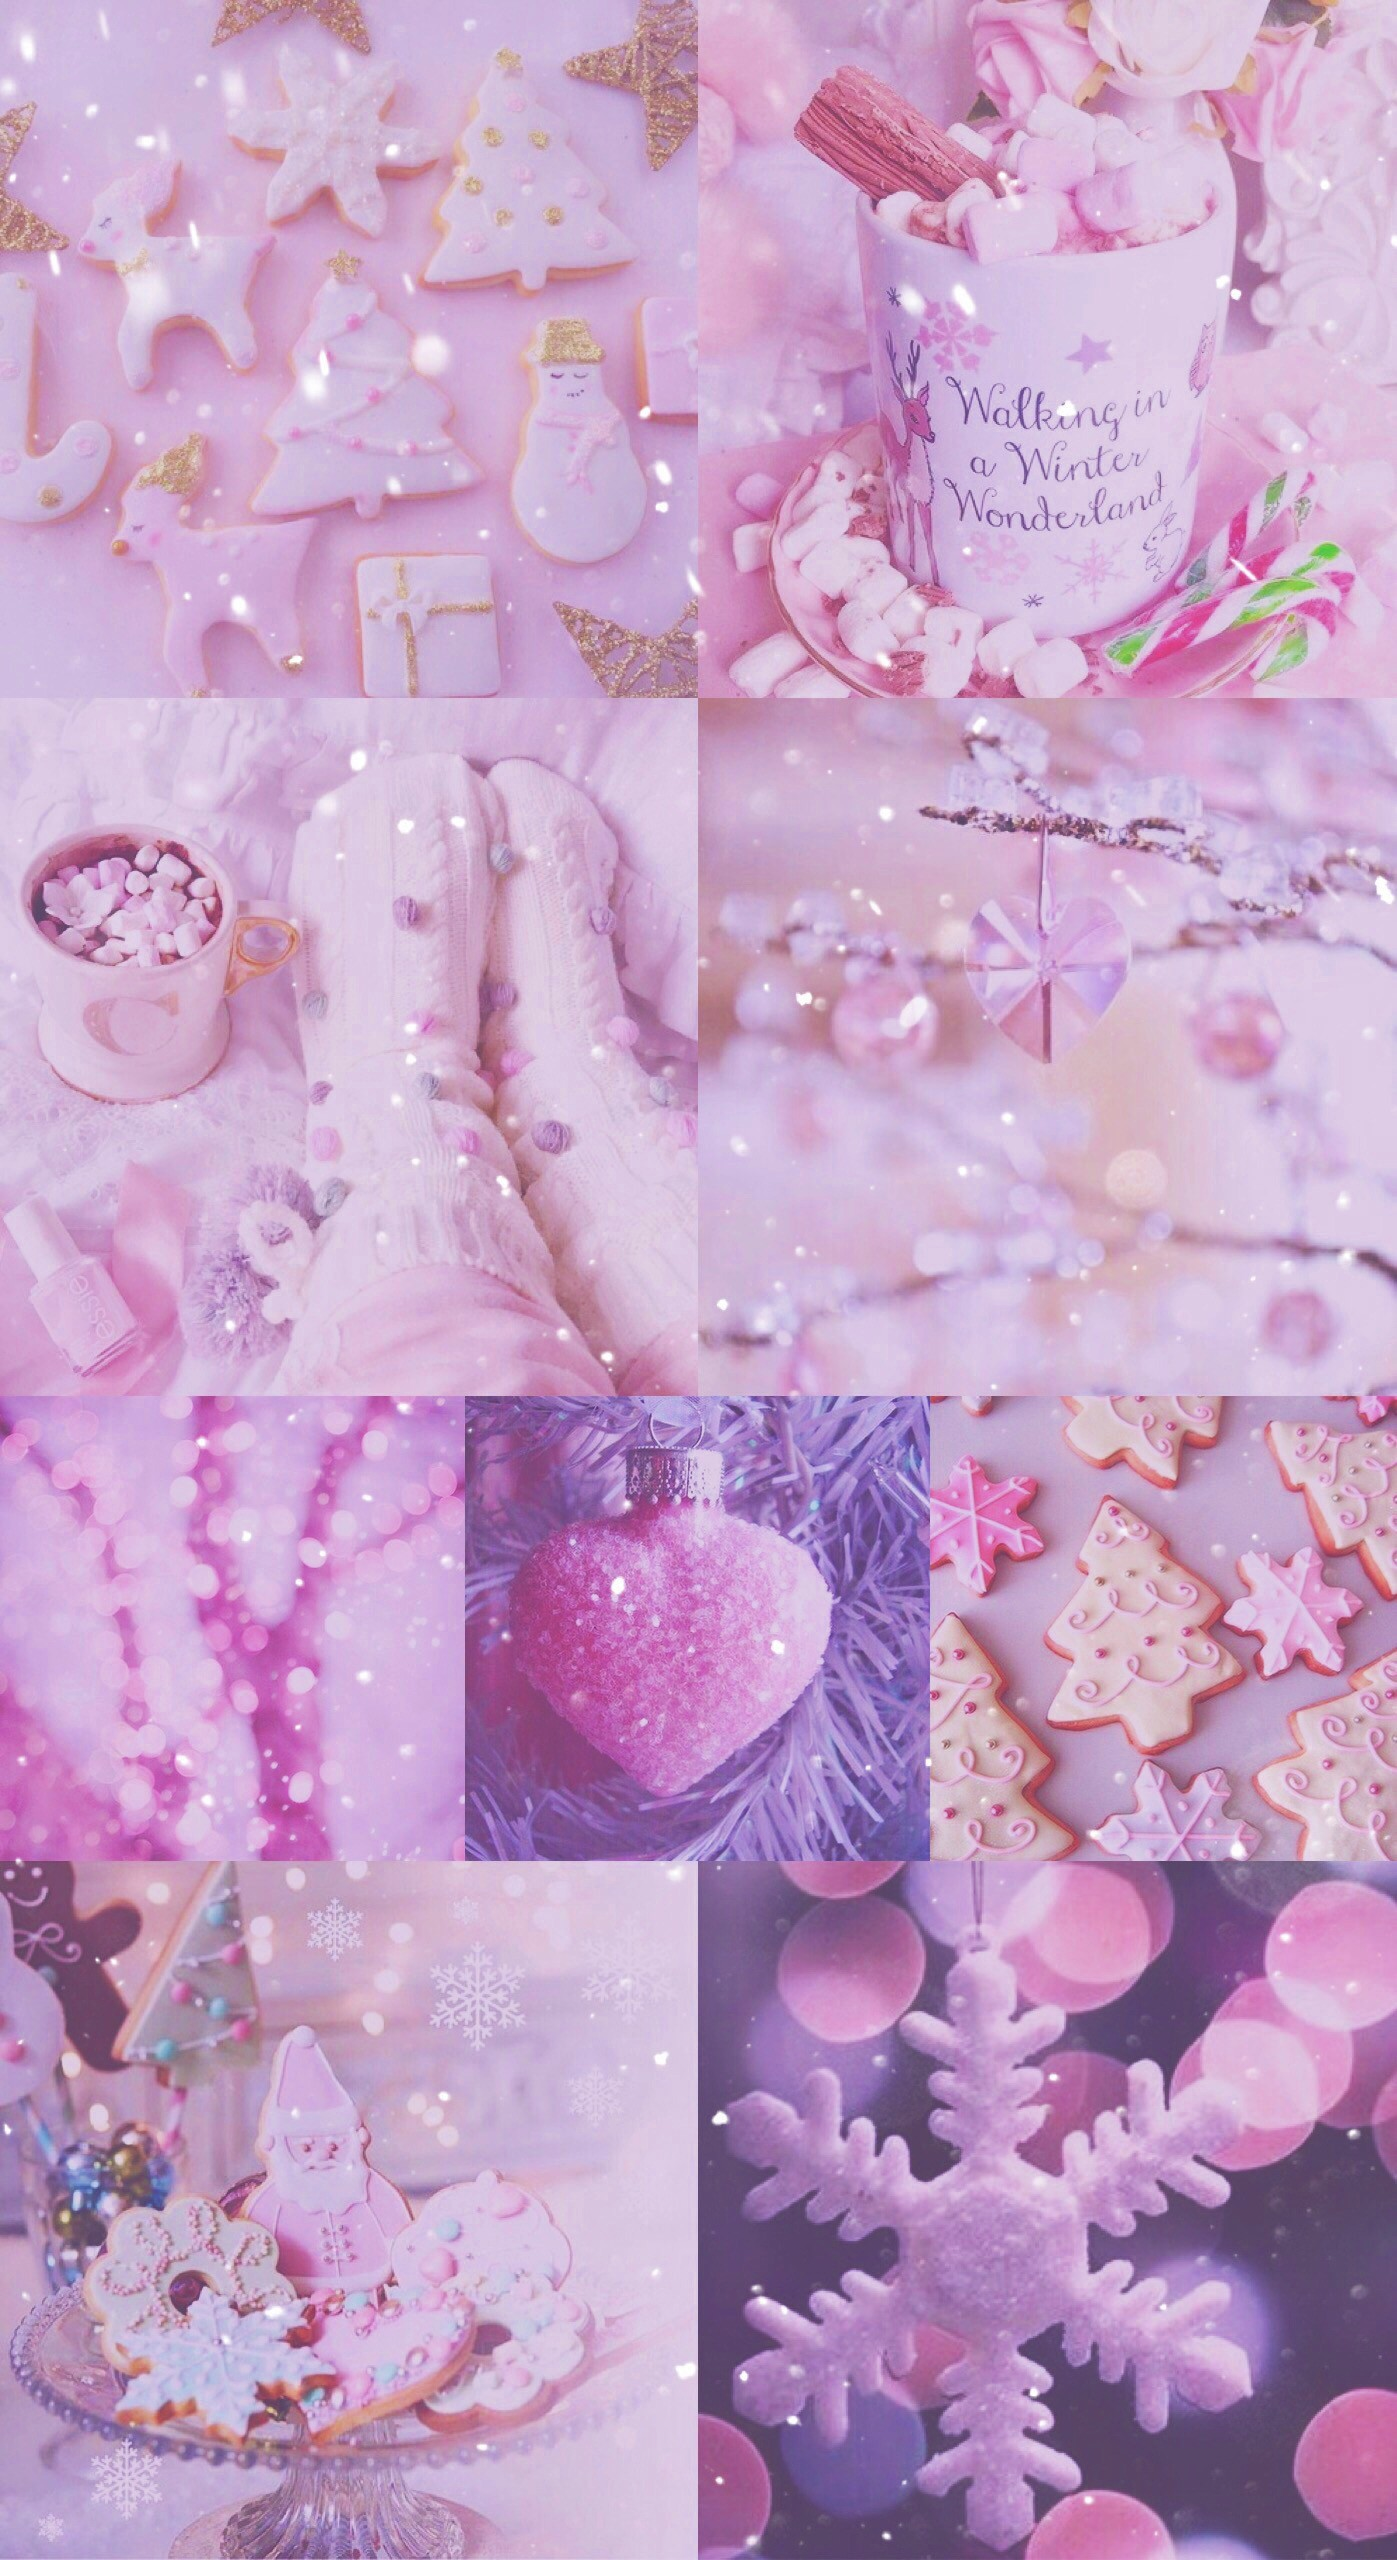 xmas, Christmas, pink, pretty, sparkly, glitter, white, iPhone,